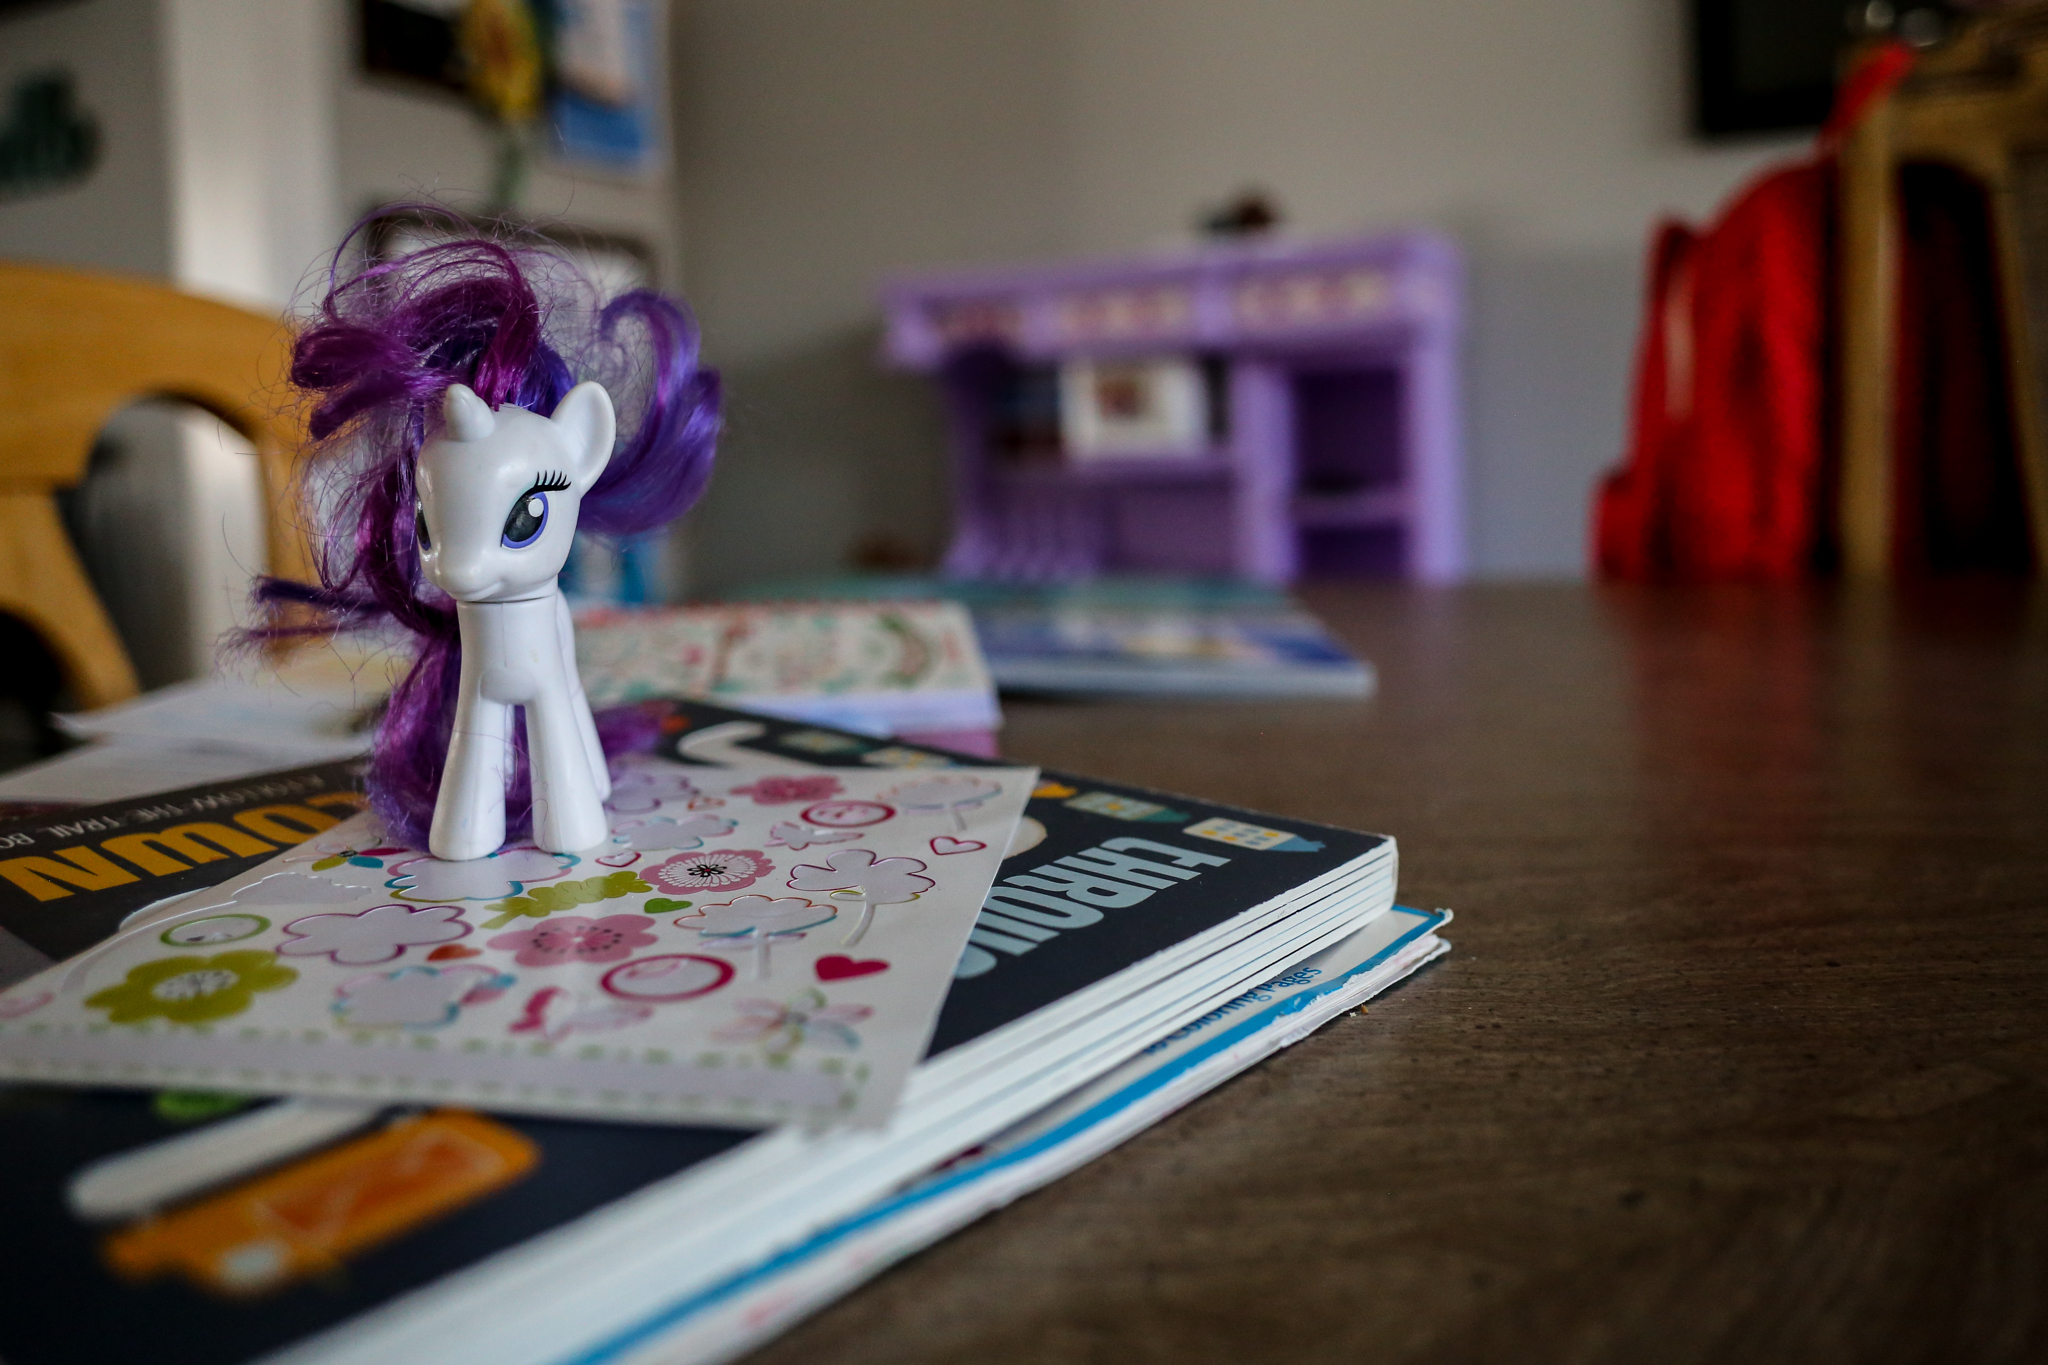 My little pony on the dining room table, at home in Macungie, PA.